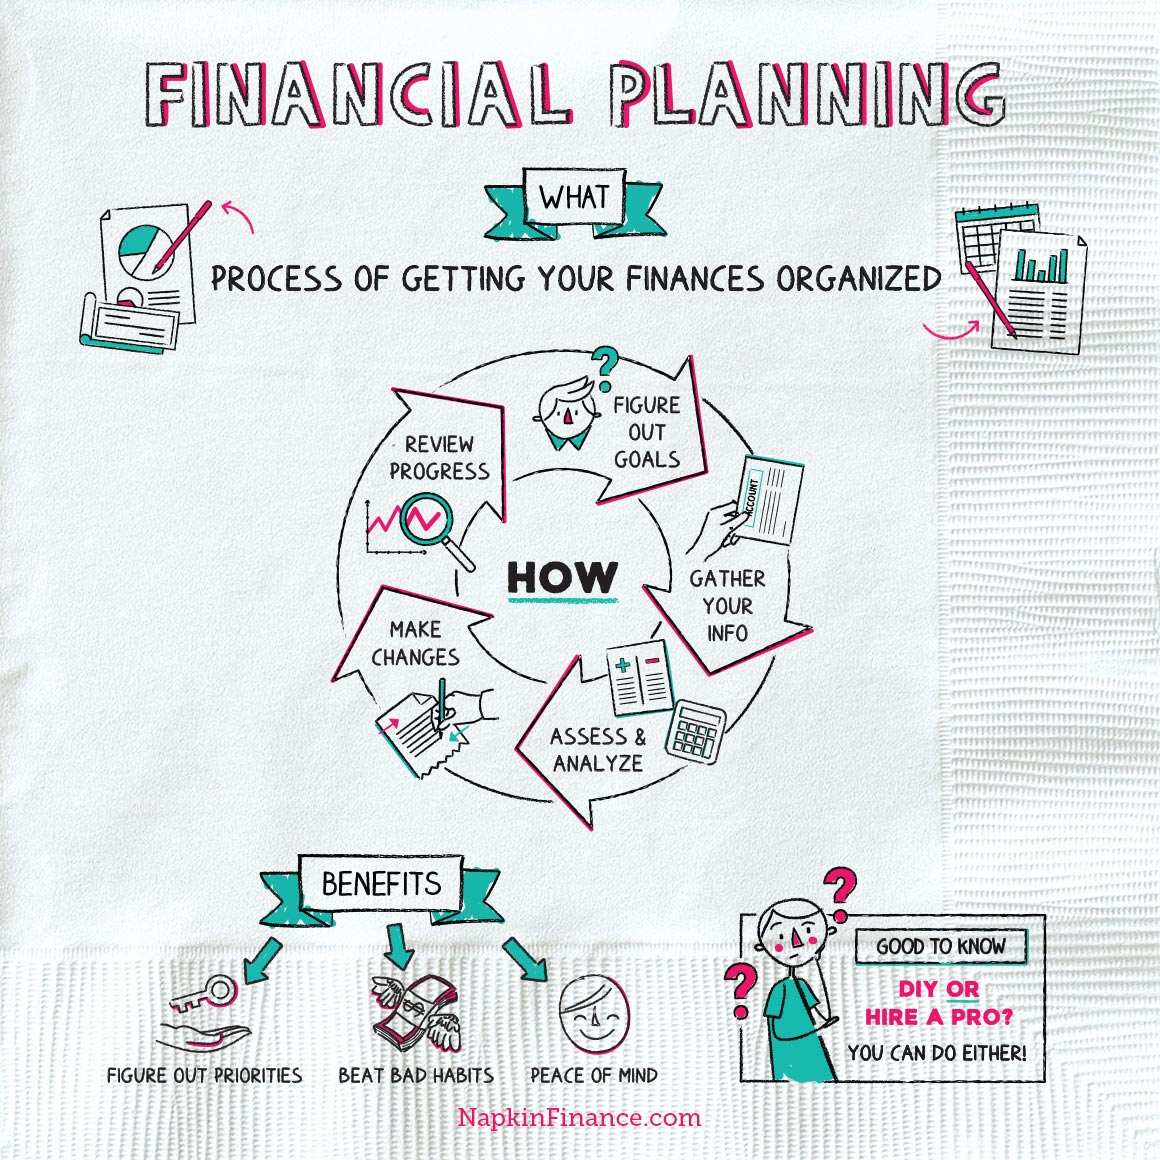 Financial Planning With Images Finance Economics Lessons